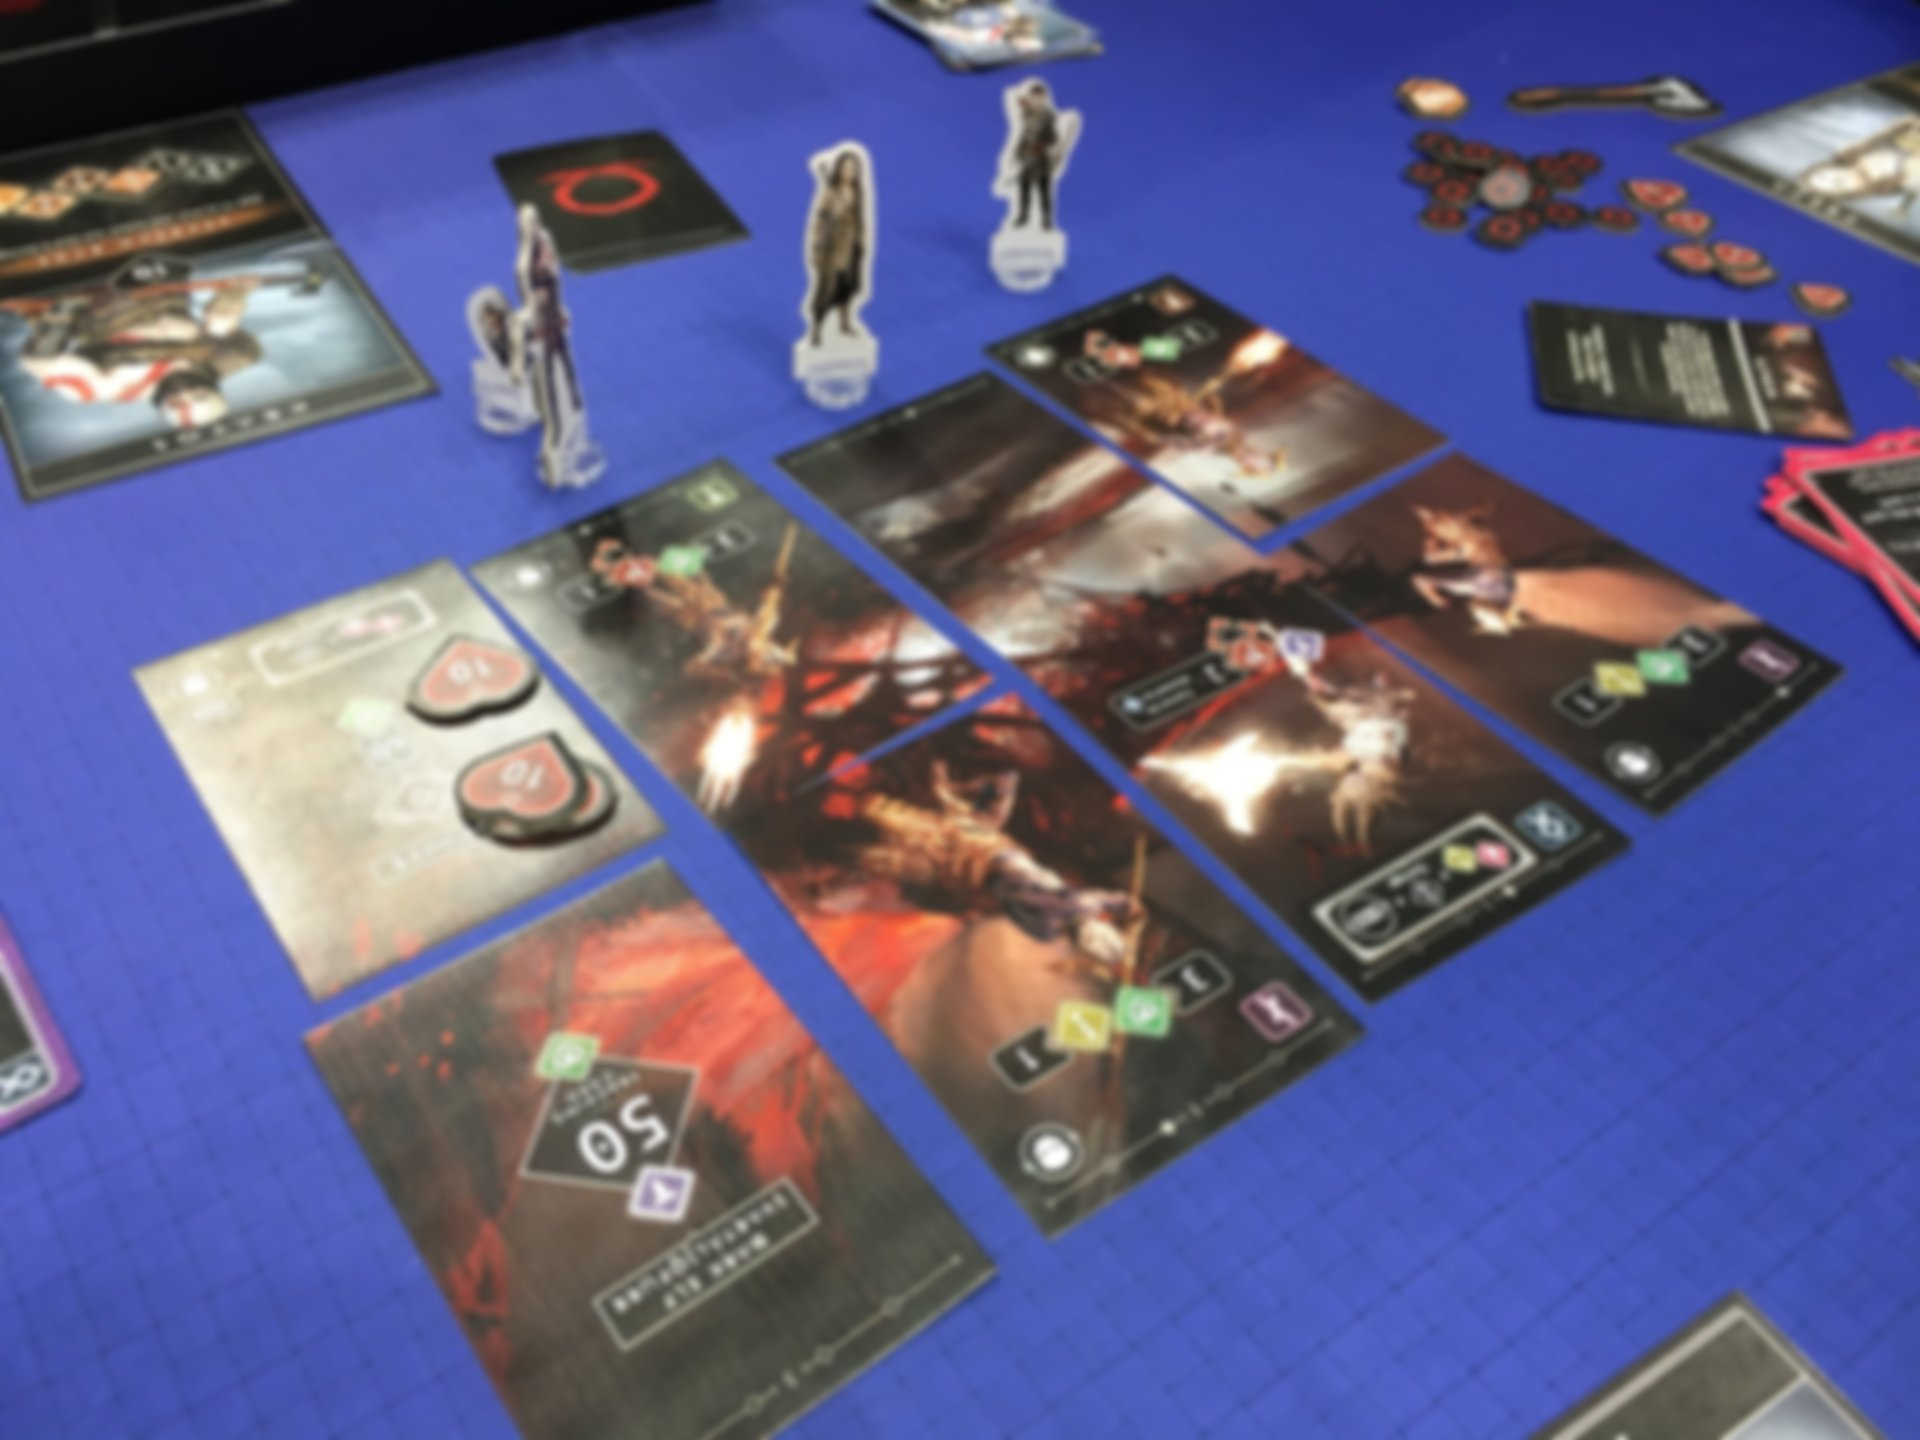 God of War: The Card Game gameplay